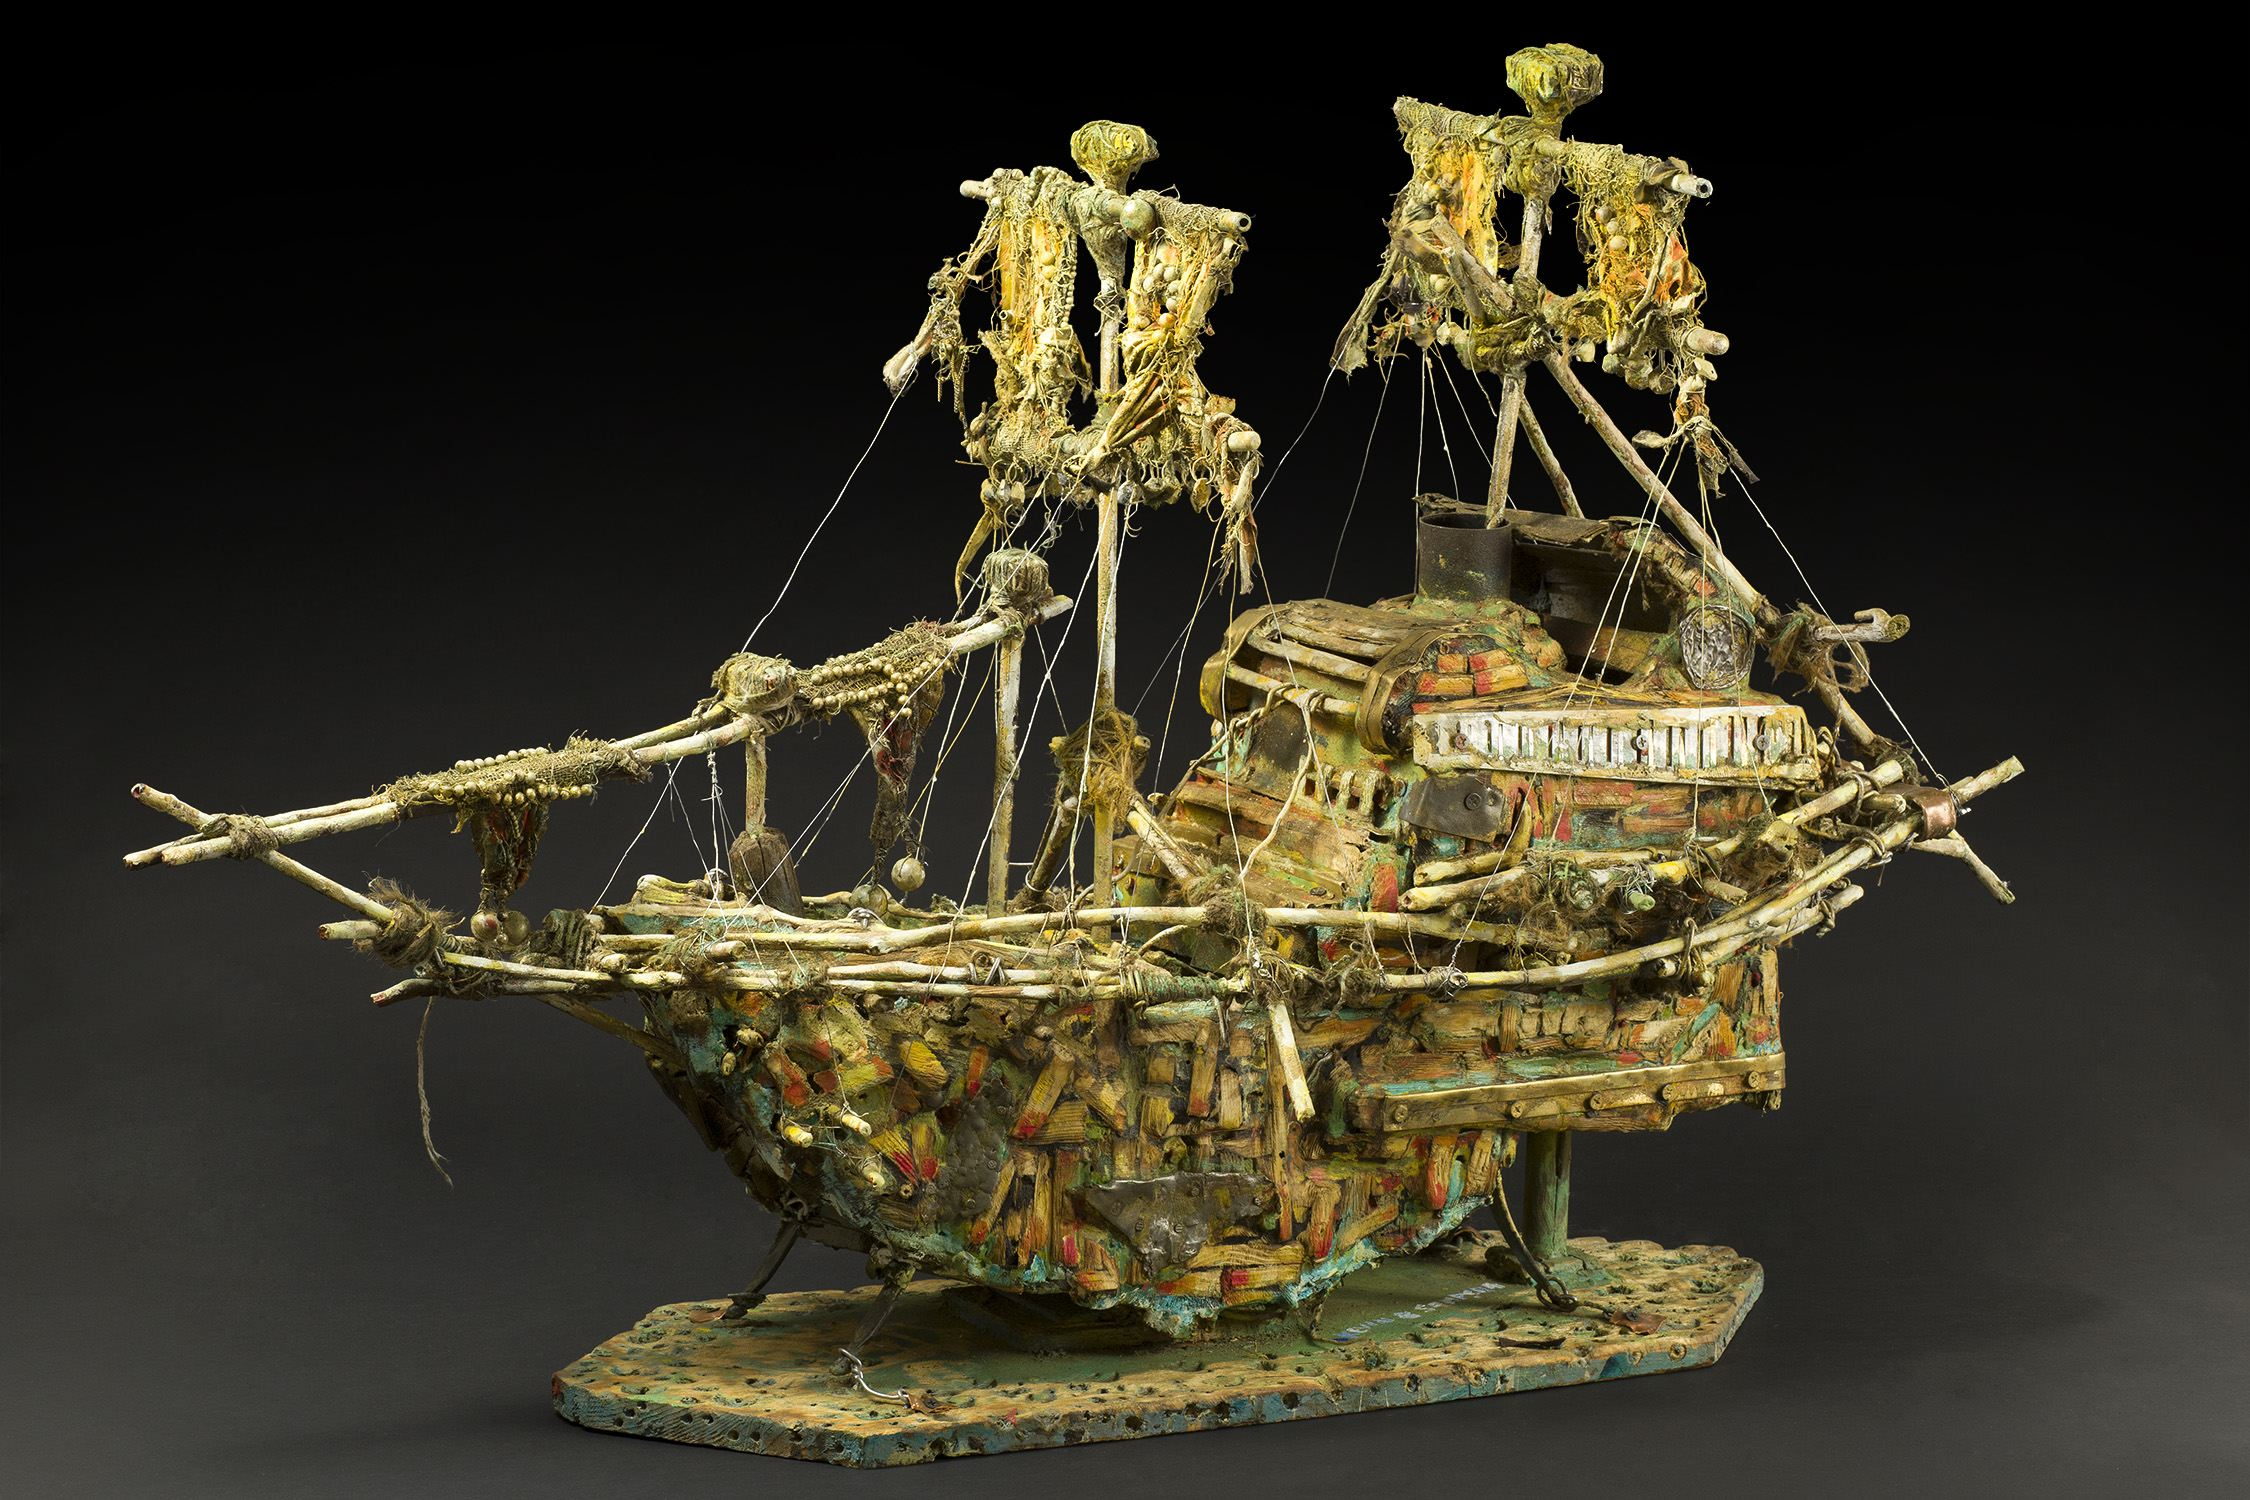 Kevin Sampson    The Kron-Printzen  , 2014 Wood, metal, string, and found materials 26 x 27 x 12 inches 66 x 68.6 x 30.5 cm SK 203